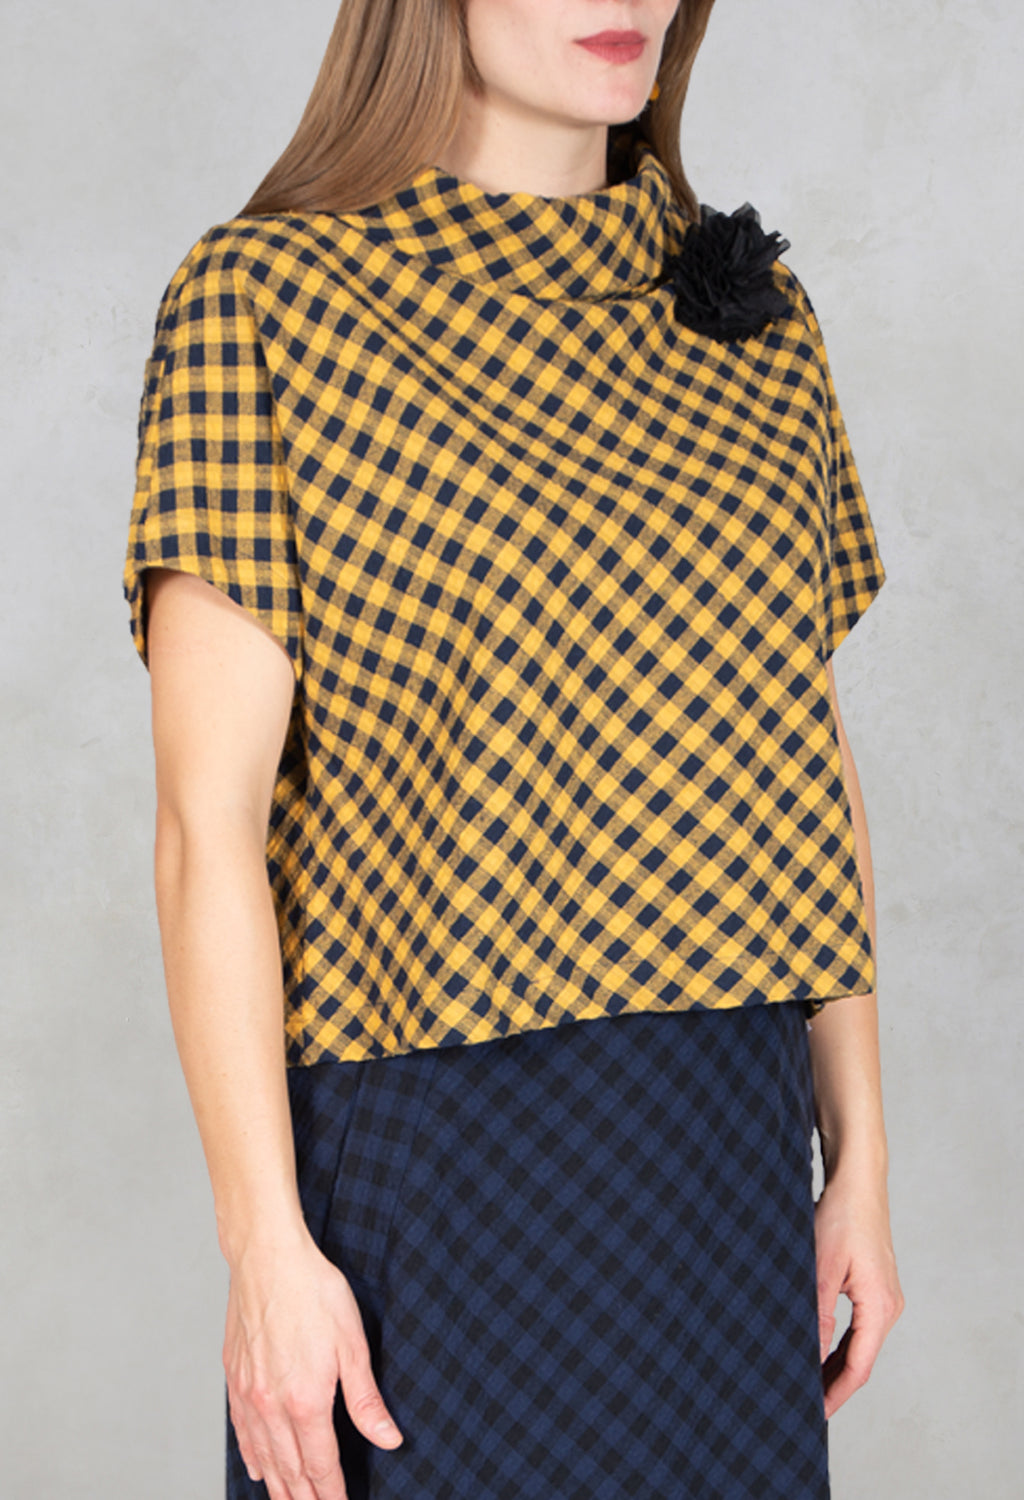 Shirt Diva in Mustard/Night